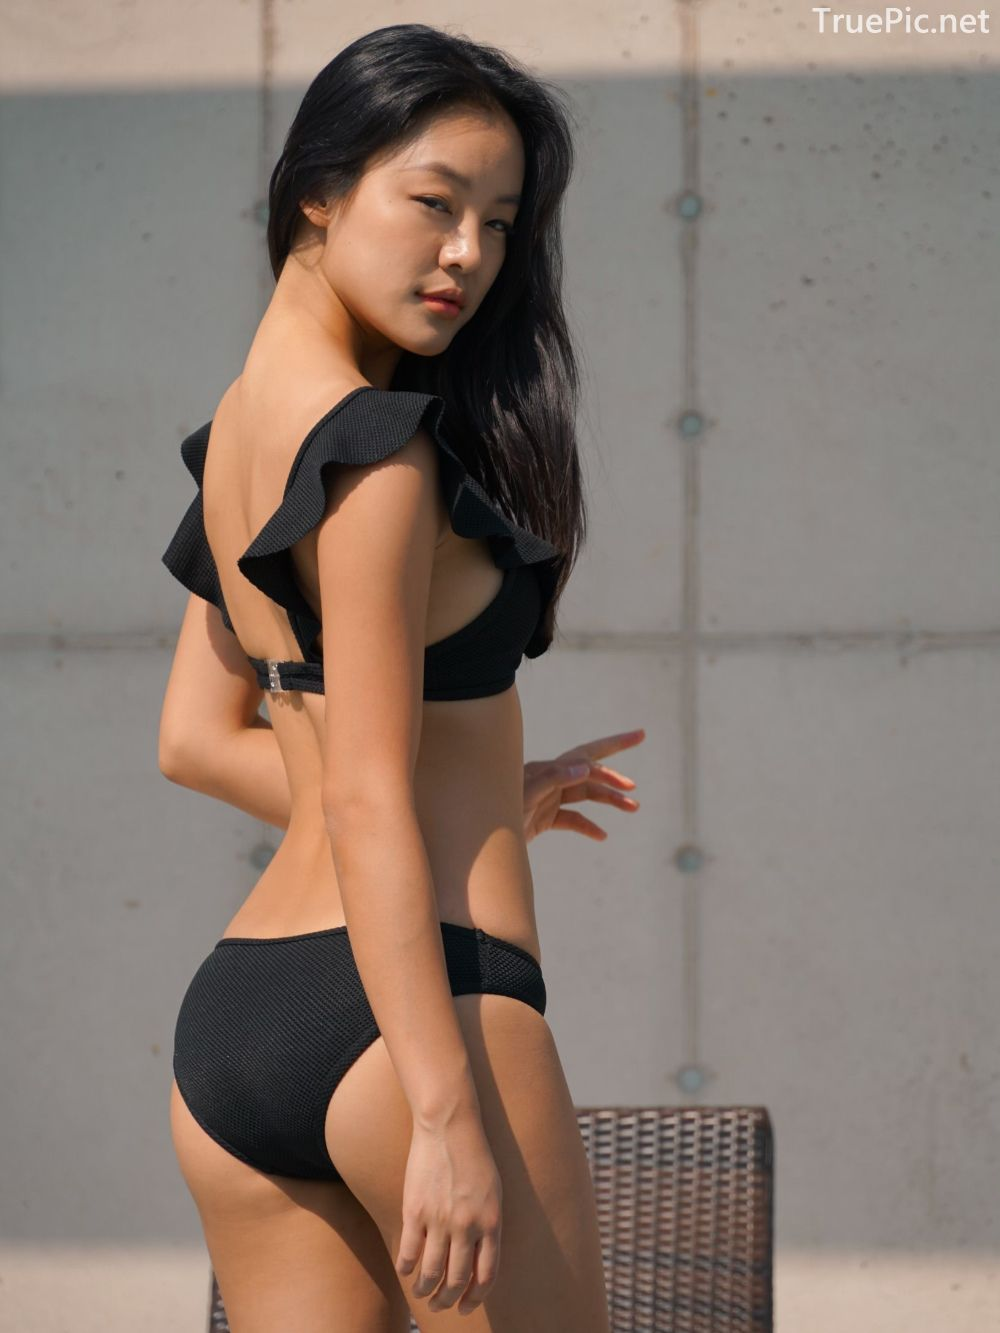 Korean model and fashion - Choi Seok Yeong - Alice Black and Blue Bikini - Picture 6